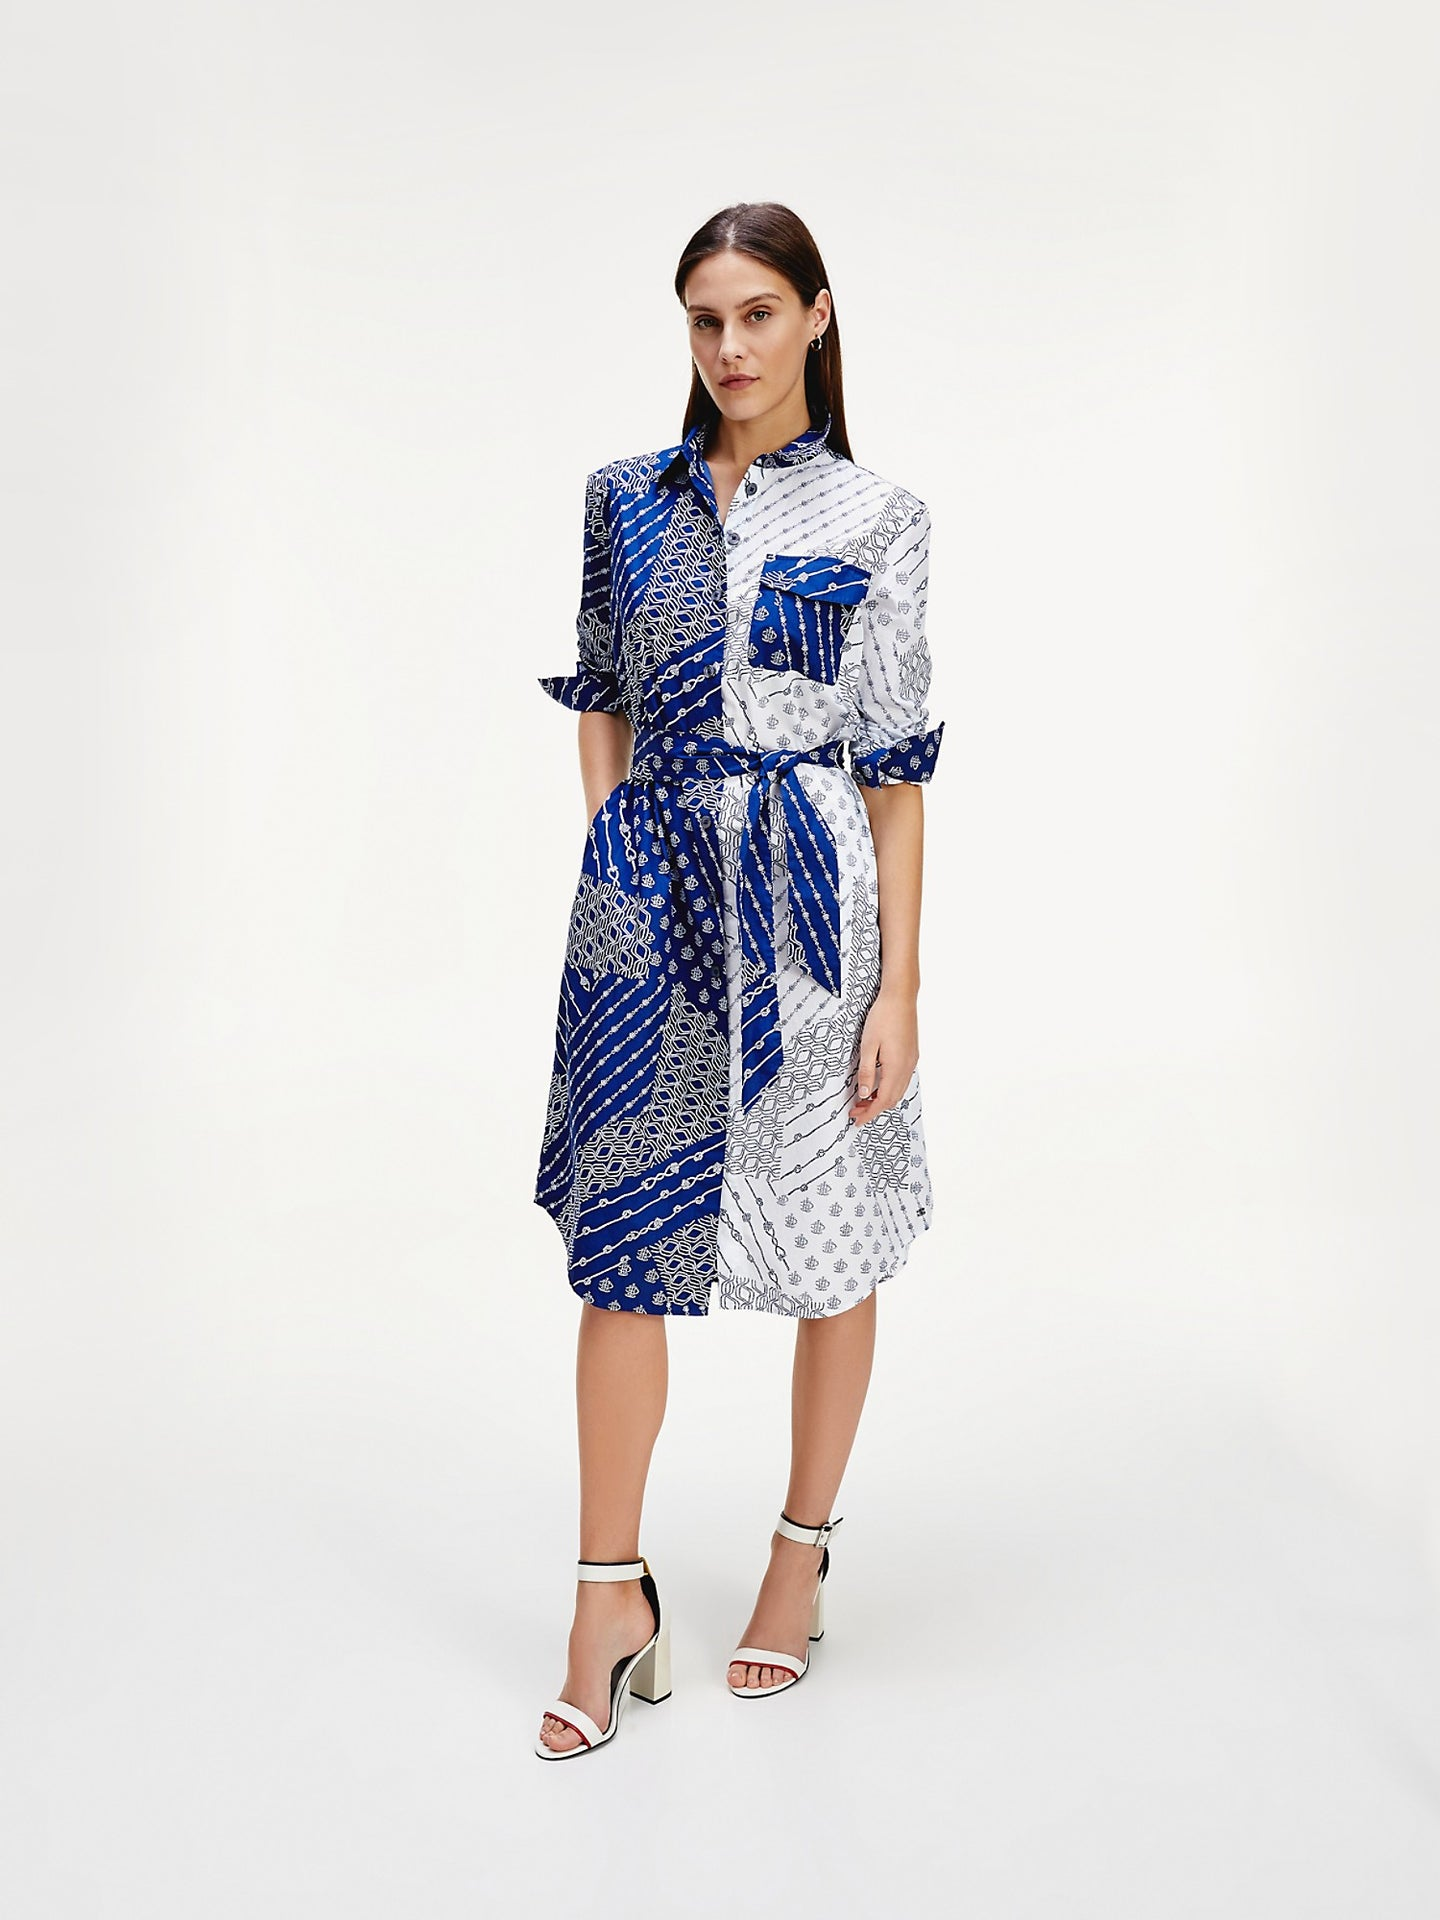 TOMMY HILFIGER MIXED PRINT SHIRTDRESS Tommy Hilfiger Mixed Print Shirt Dress